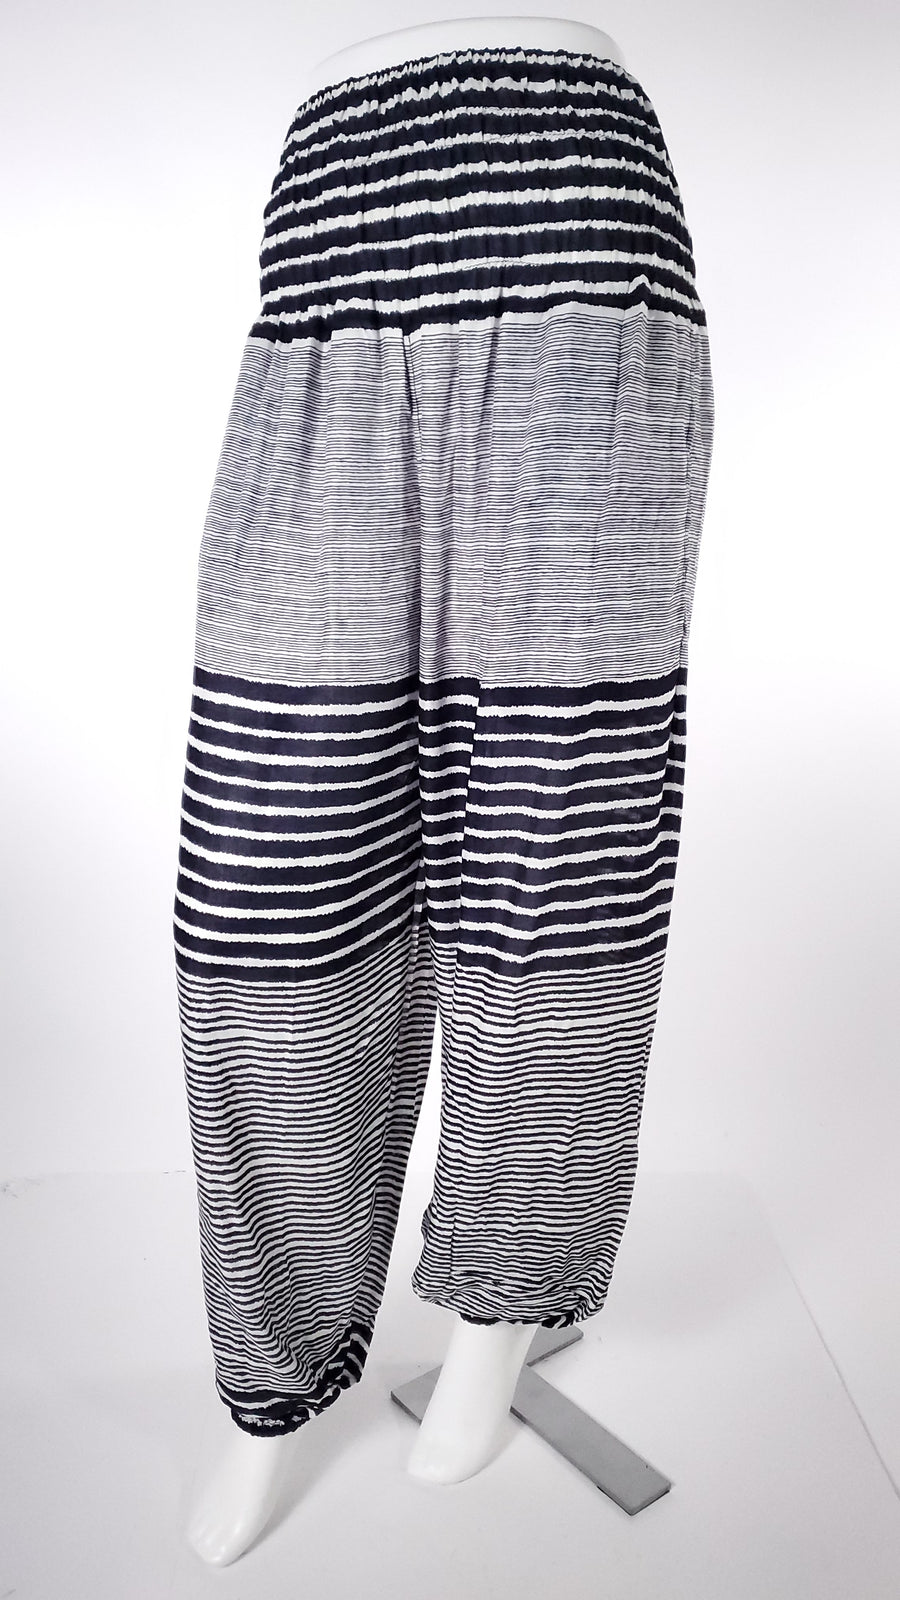 Striped Straight Leg Harem Pants In Dark Blue-The High Thai-The High Thai-Yoga Pants-Harem Pants-Hippie Clothing-San Diego